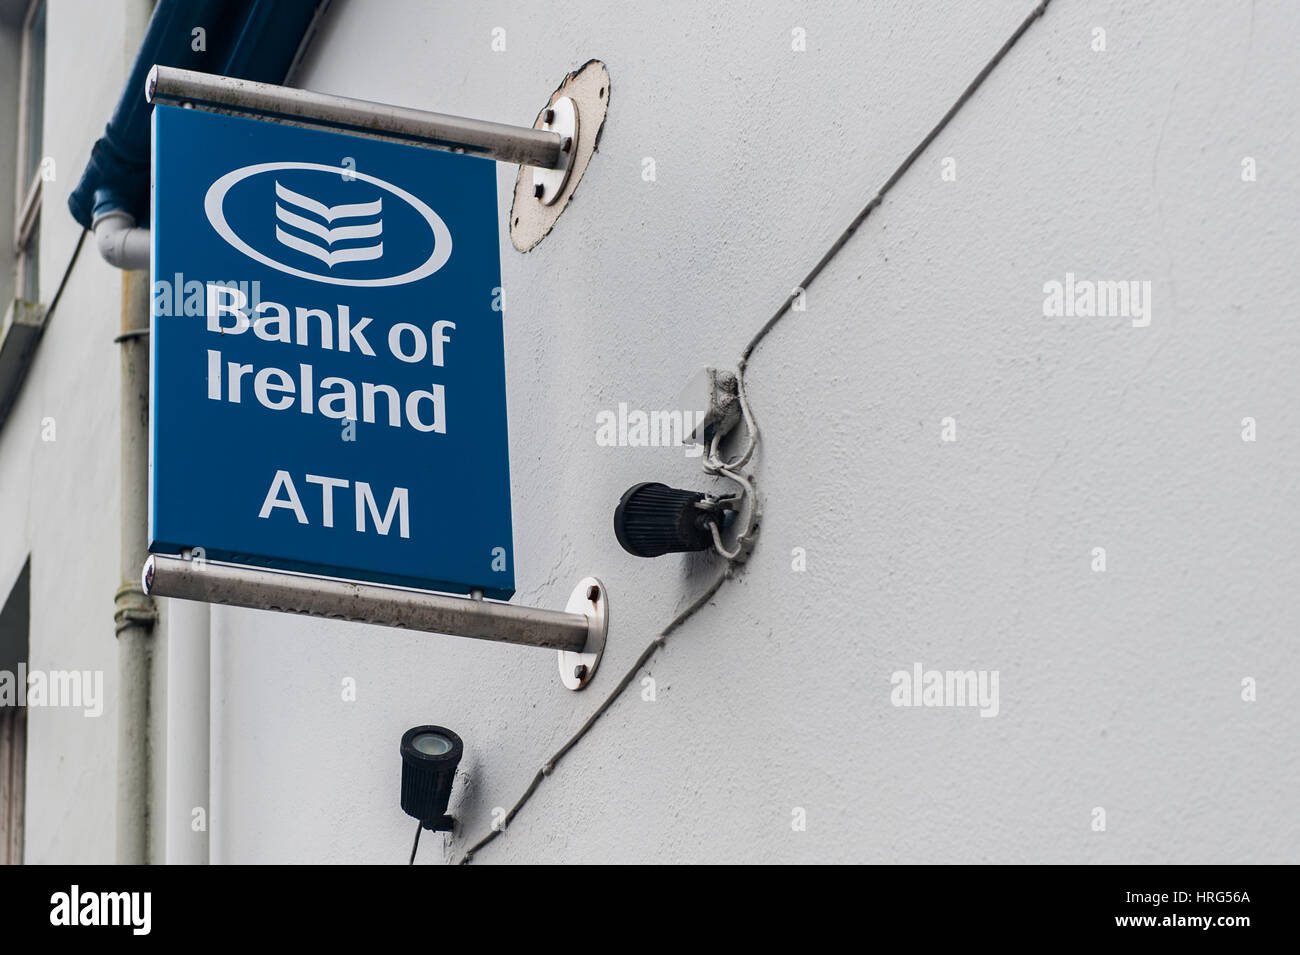 Bank of Ireland ATM sign with copy space. - Stock Image